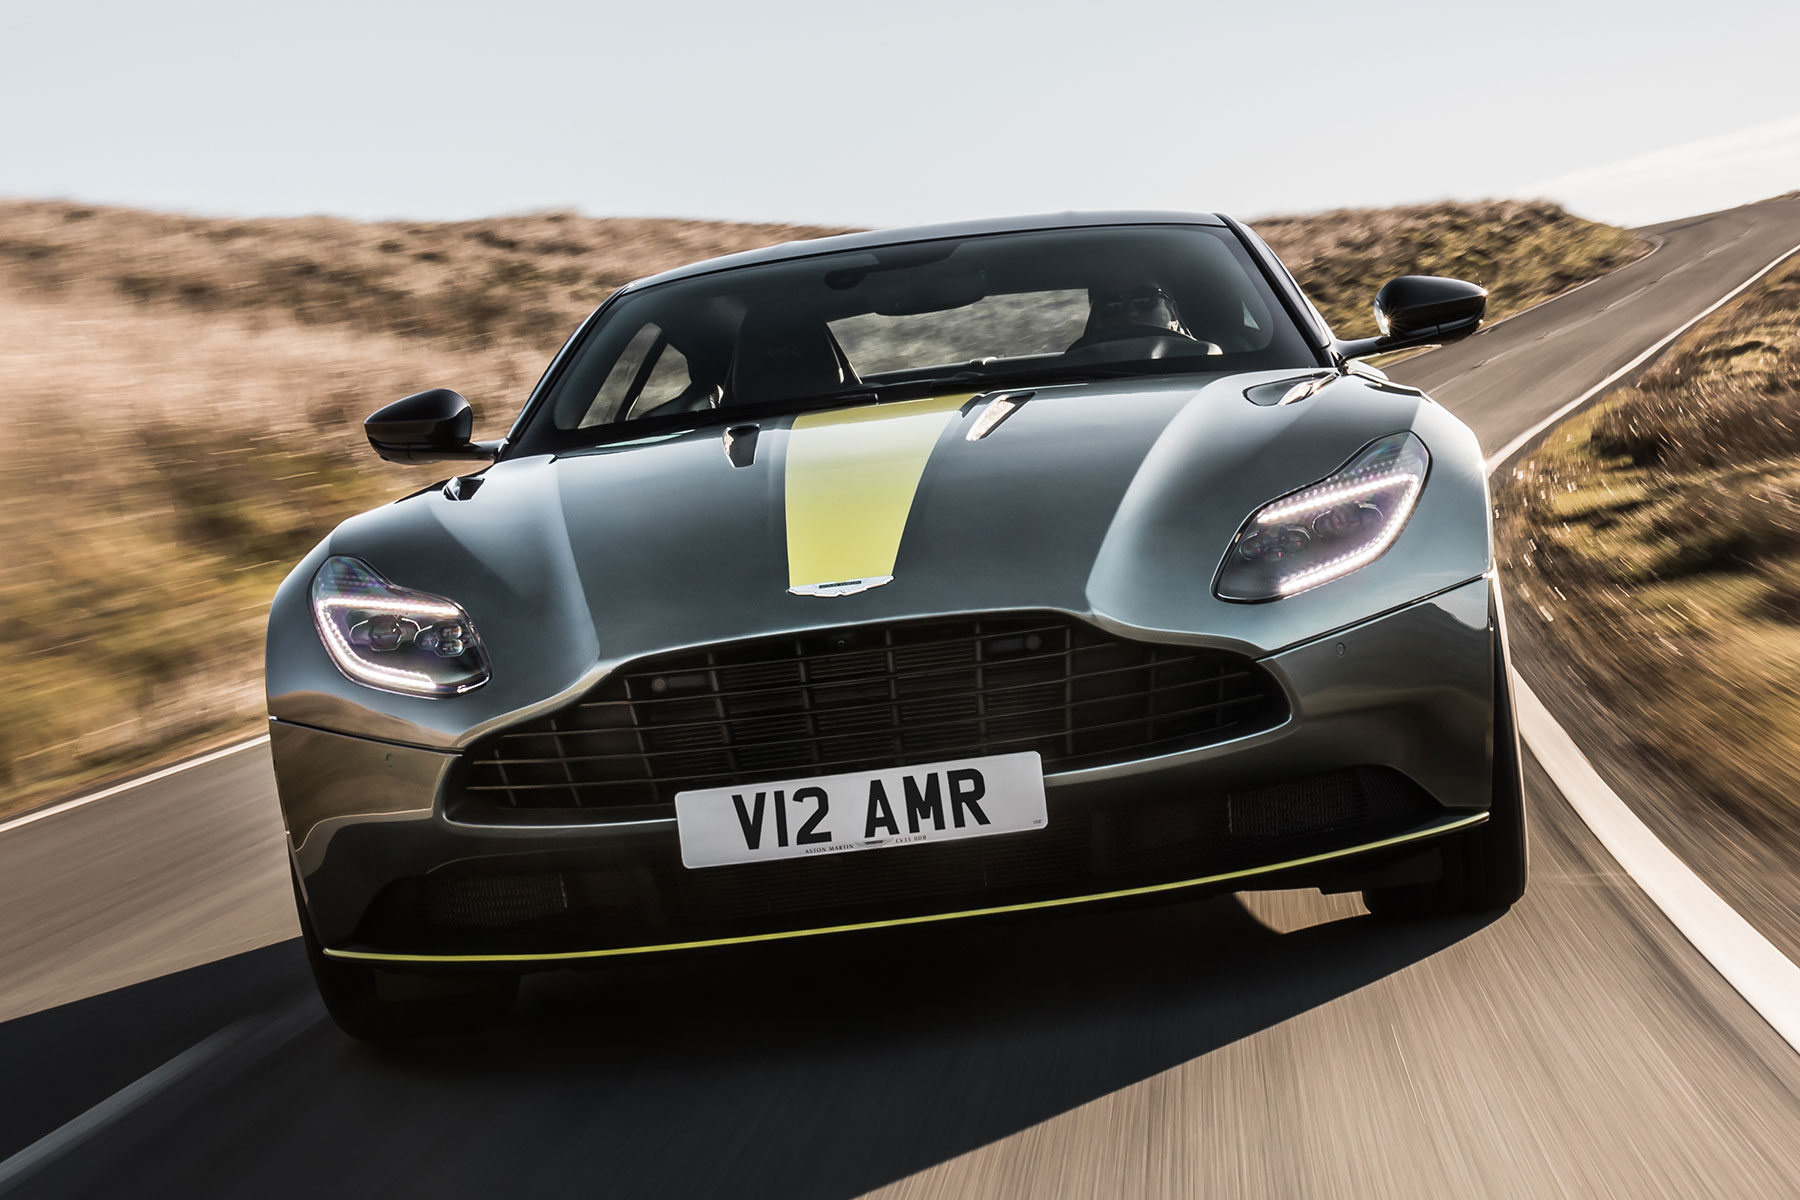 aston martin db11 amr is a 208mph race-tuned flagship | motoring